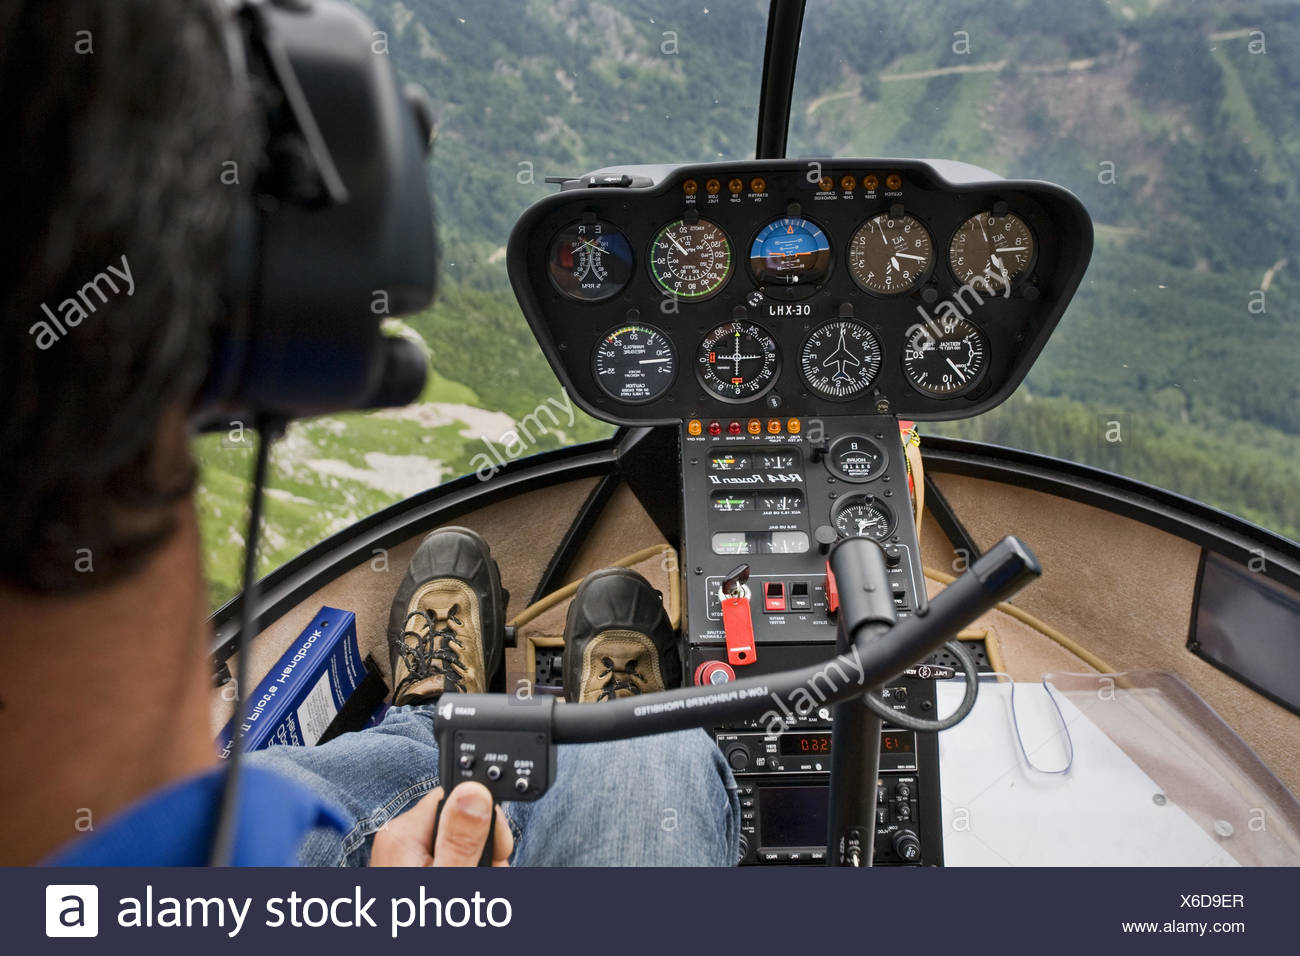 Helicopter, cockpit, pilot, instruments, - Stock Image